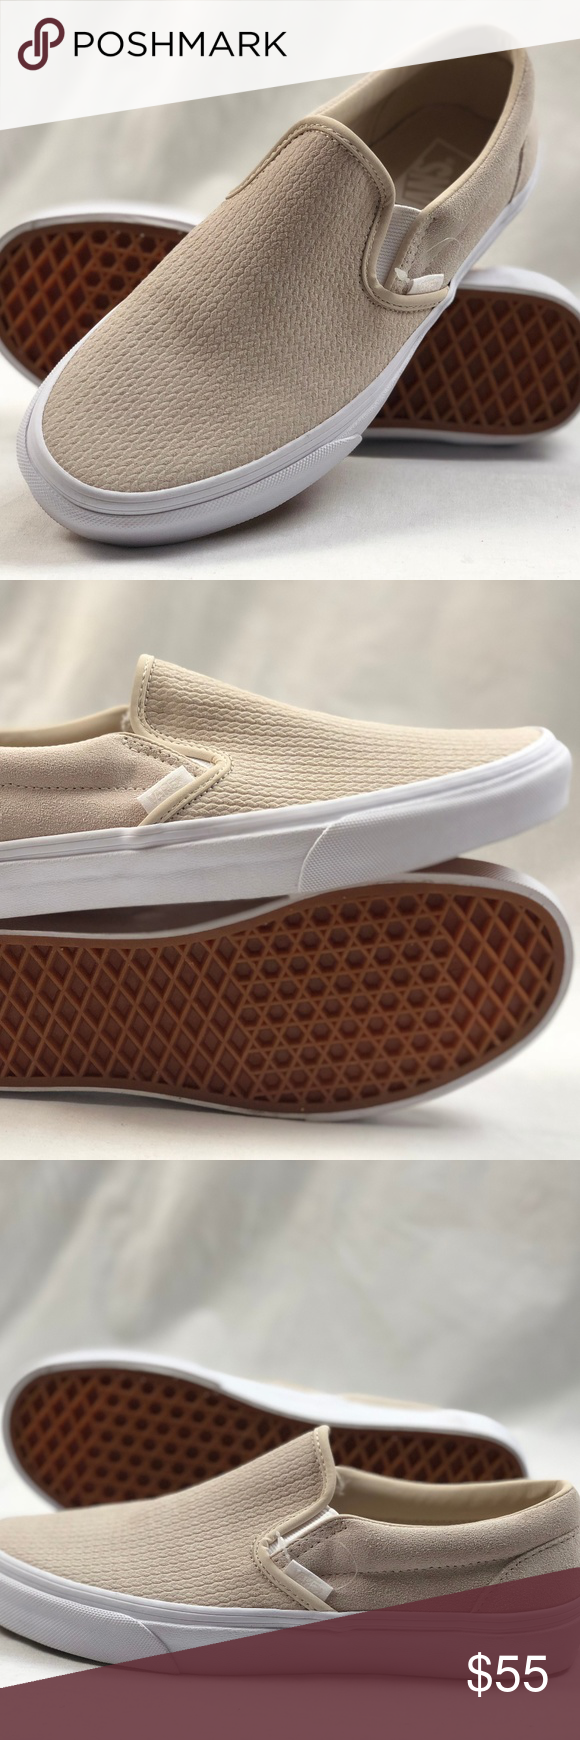 bb71fceca8 Vans Classic-On Moonbeam Suede Emboss Slip-on Shoe Vans Classic-On Moonbeam  Suede Emboss Slip-on Shoes. Condition  New without box.